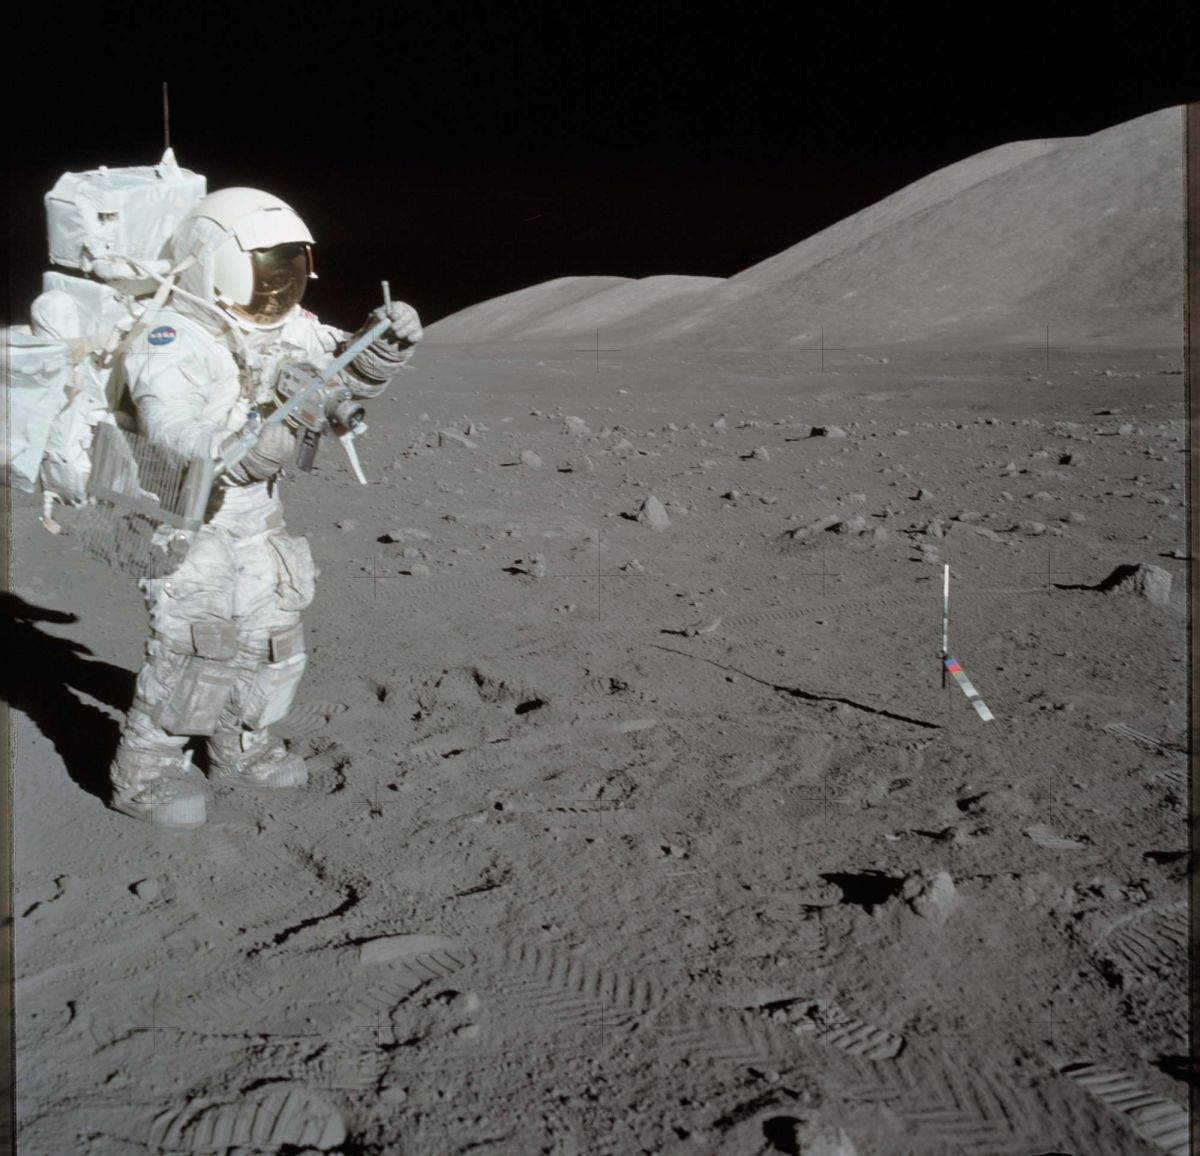 Future Moonwalkers Need Geology Training, Apollo 17's Harrison Schmitt Says